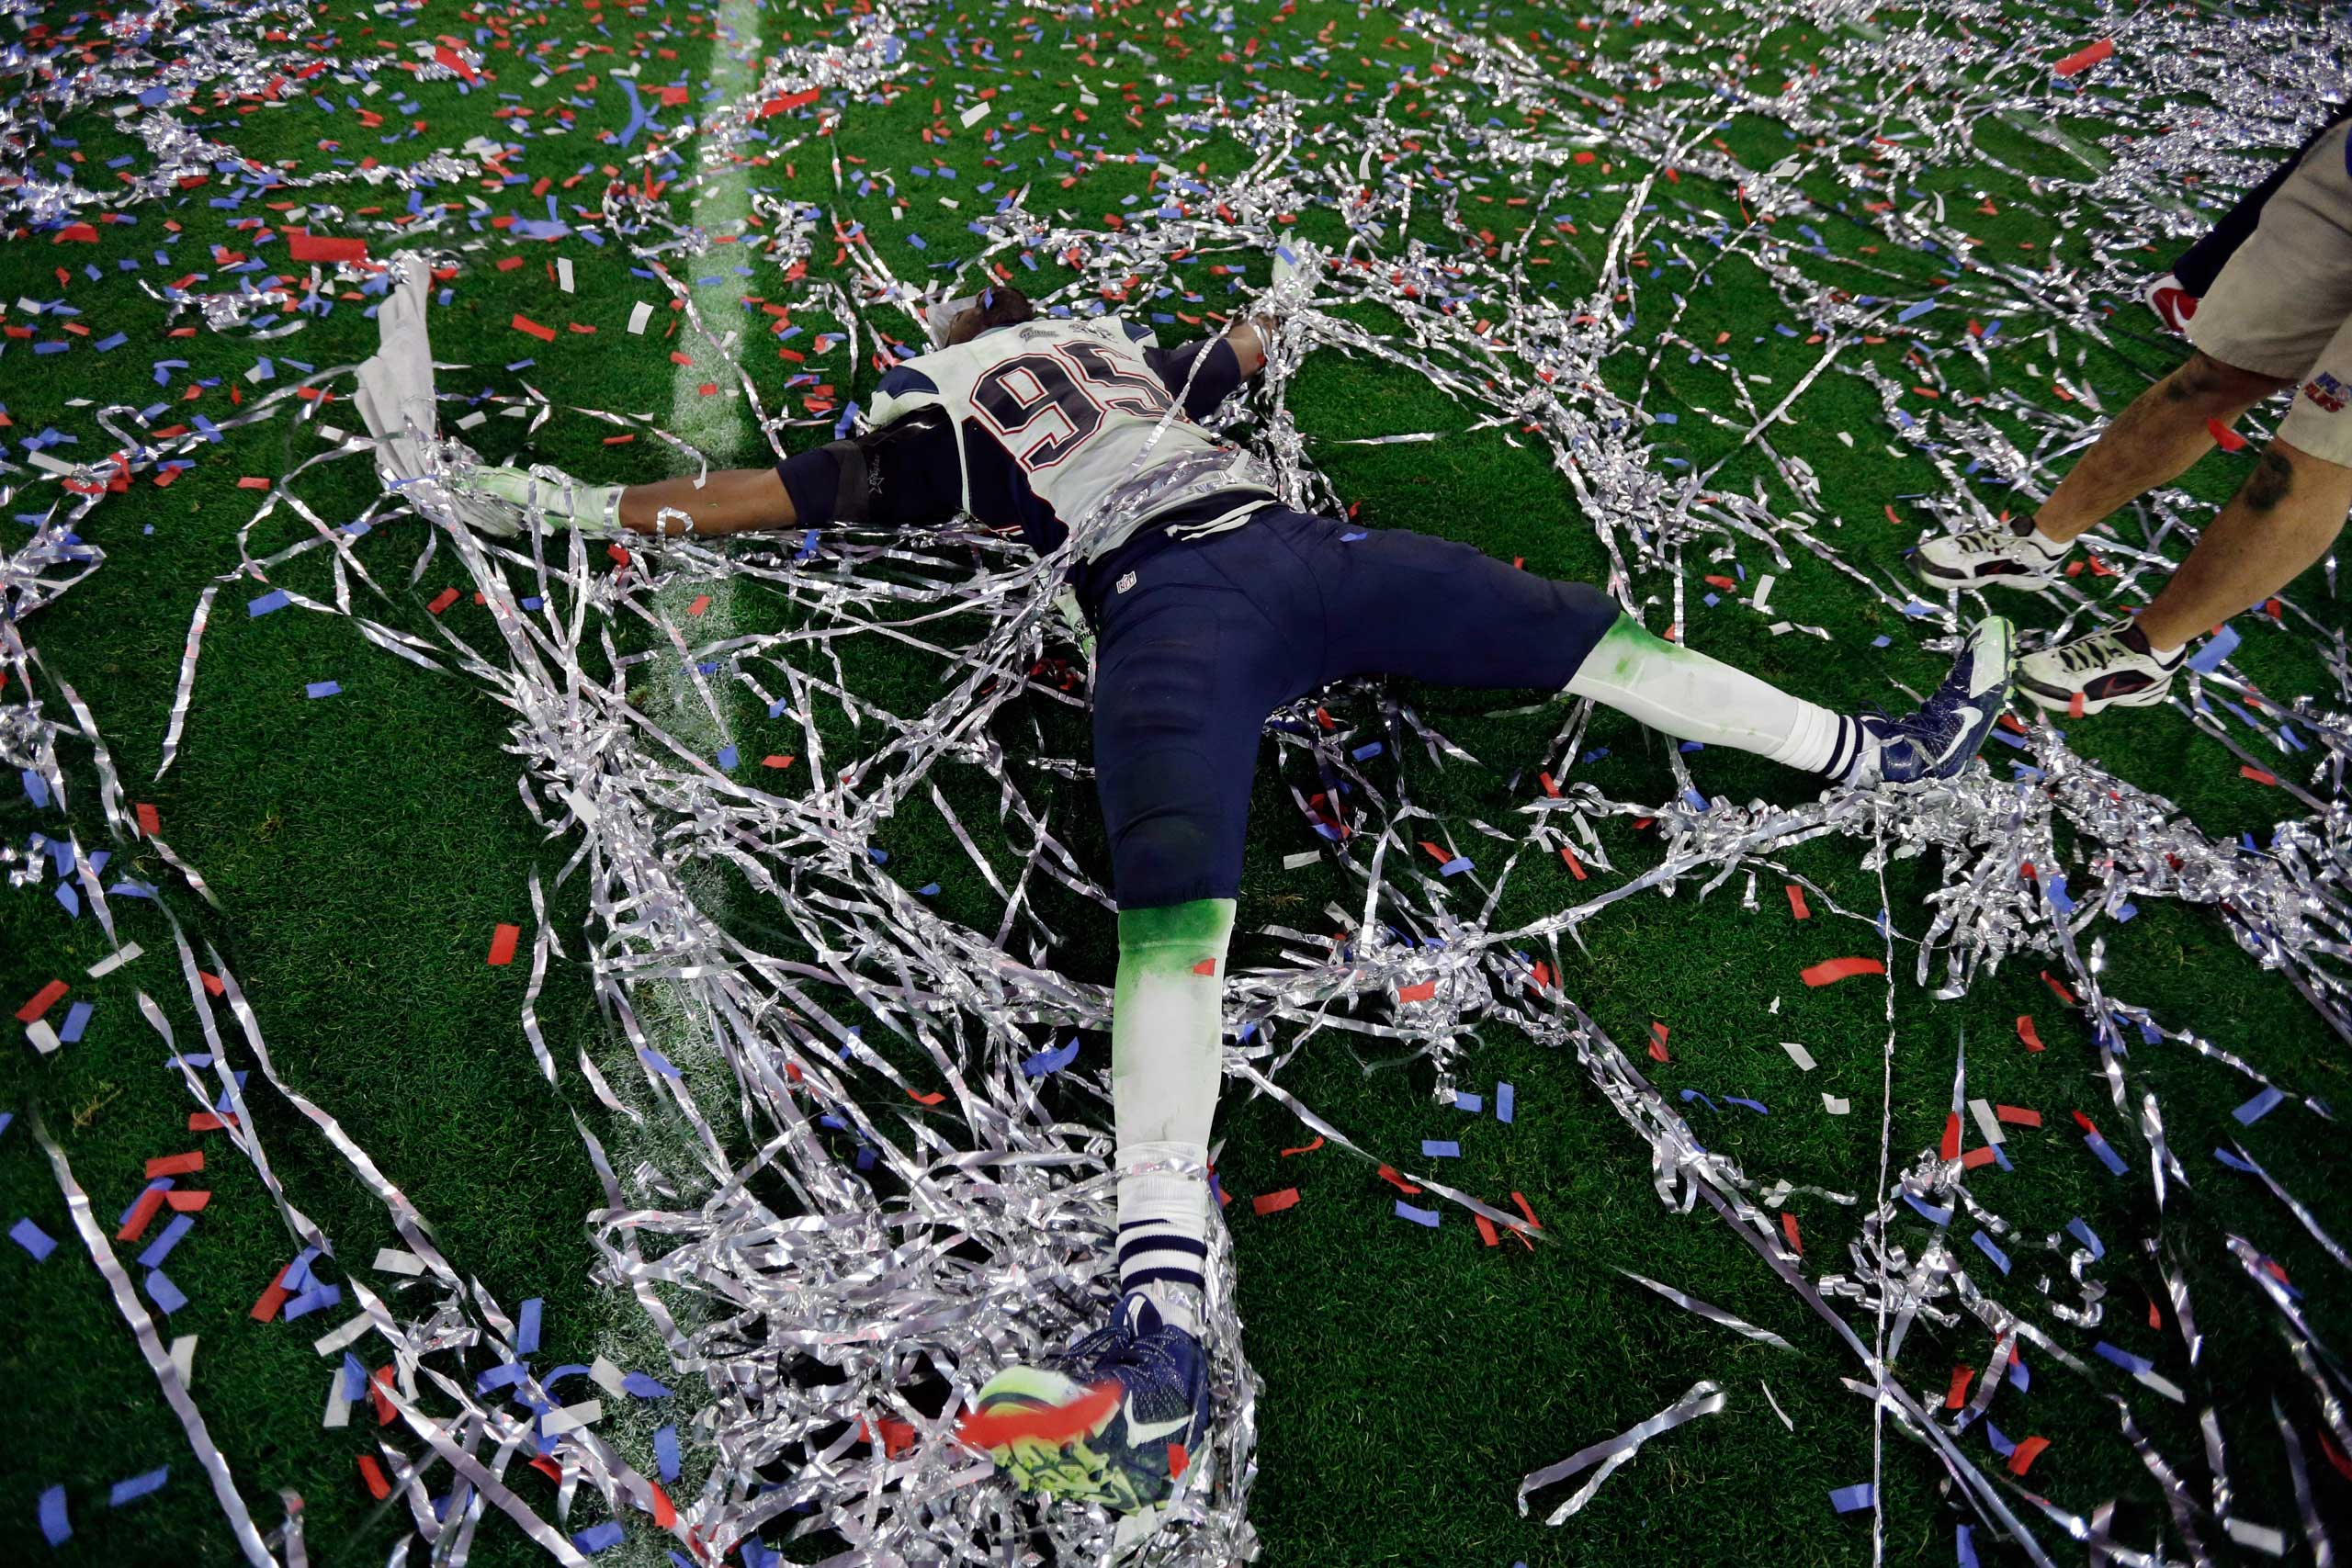 Chandler Jones of the New England Patriots celebrates after the Patriots defeated the Seattle Seahawks 28-24 in the Super Bowl XLIX on Feb. 1, 2015, in Glendale, Ariz.